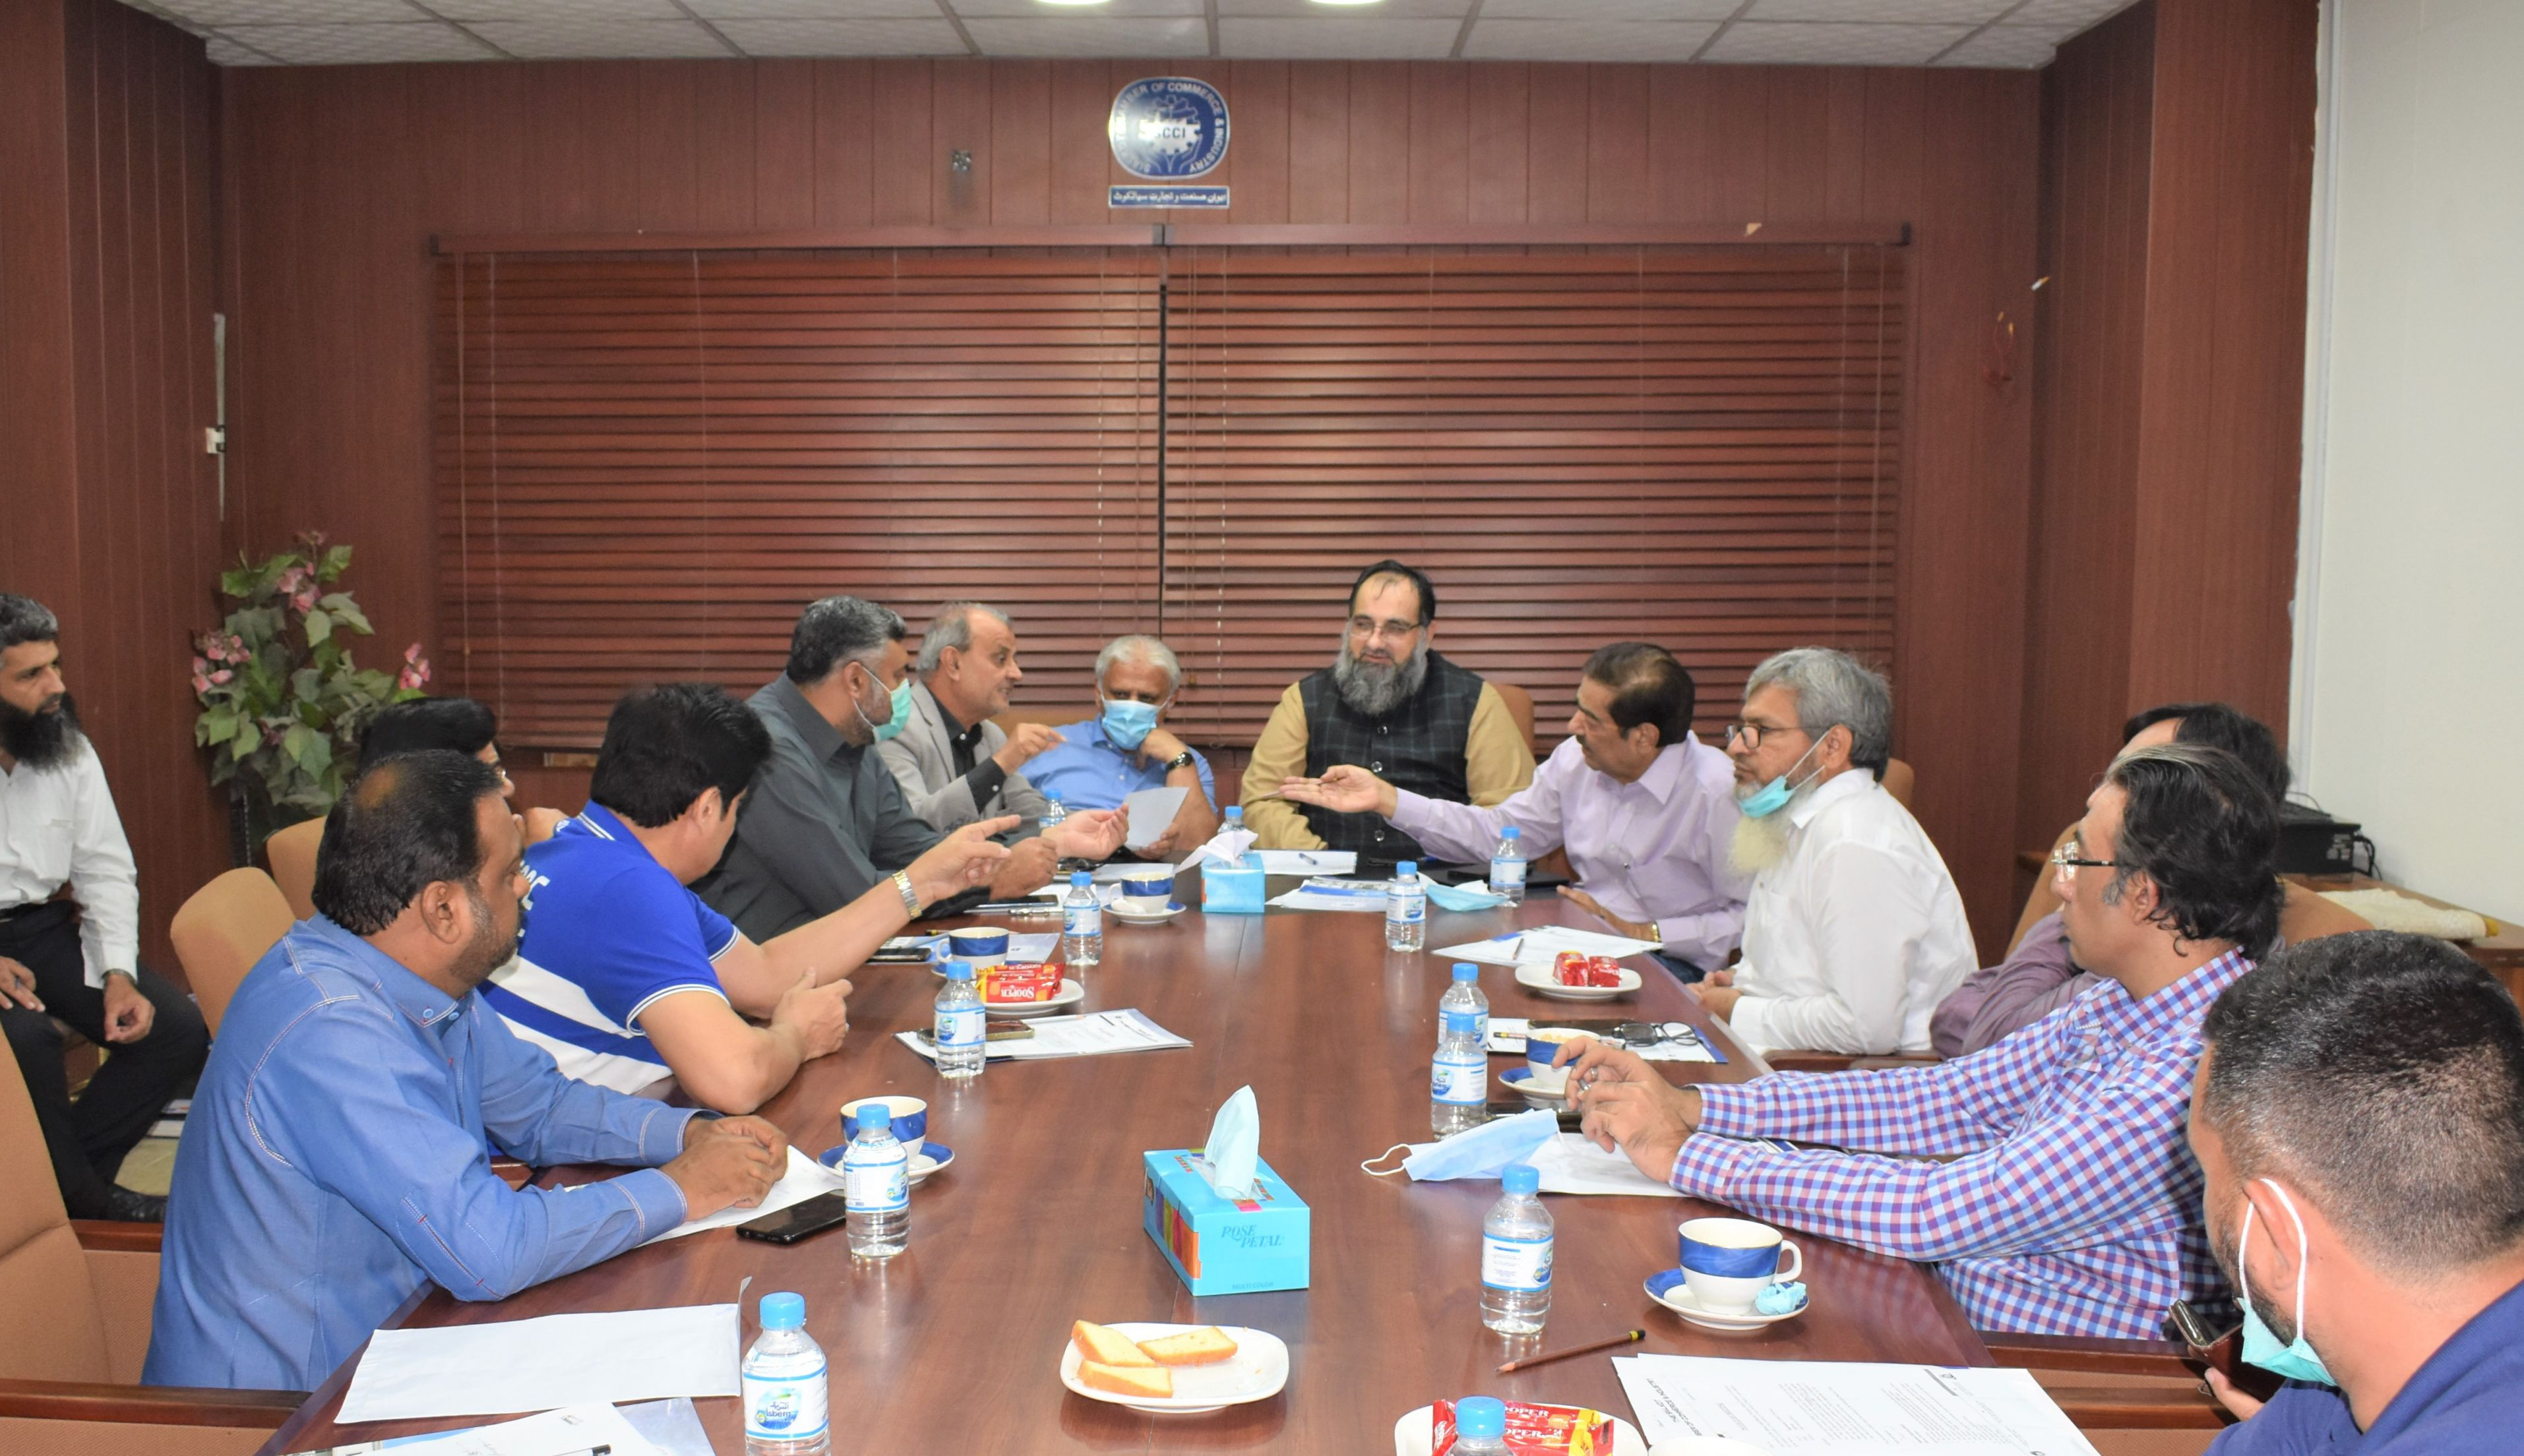 On September 09, 2021, A joint meeting of Trade Bodies of Sialkot was held at Sialkot Chamber of Commerce & Industry to finalize Purchase Formula in respect to 5% Withholding Sales Tax for submission of report to Federal Board of Revenue.   Mr. Khuram Aslam, Senior Vice President and Mr. Ansar Aziz Puri, Vice President chaired the meeting. Mr. Fazal Jilani, Chairman AirSial and prominent business community attended the meeting.